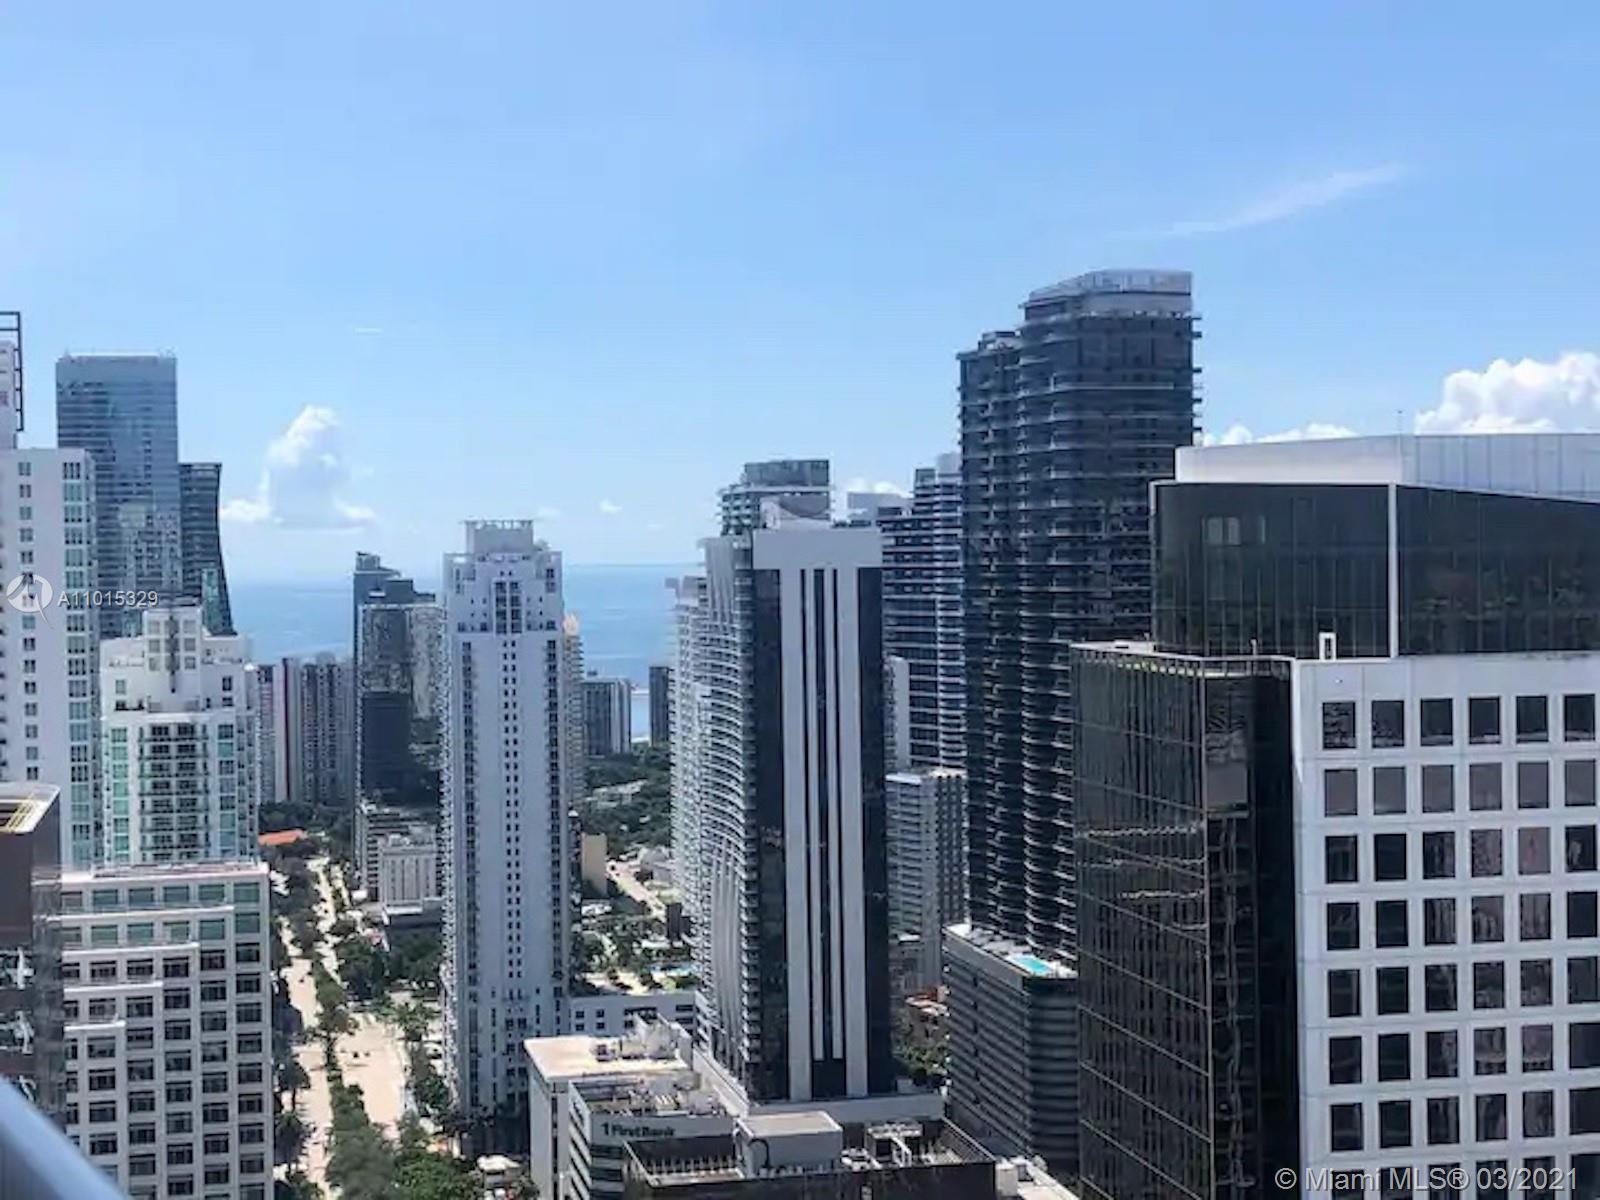 Amazing views from this penthouse located at the 49th floor. Turn key unit fully furnished in Icon Brickell tower 3 W Hotel 5 star condo with amazing amenities and with no short term rentals restrictions. 1 parking space and cable and internet included in the HOA. Great for investors or someone who needs flexibility, won't last!